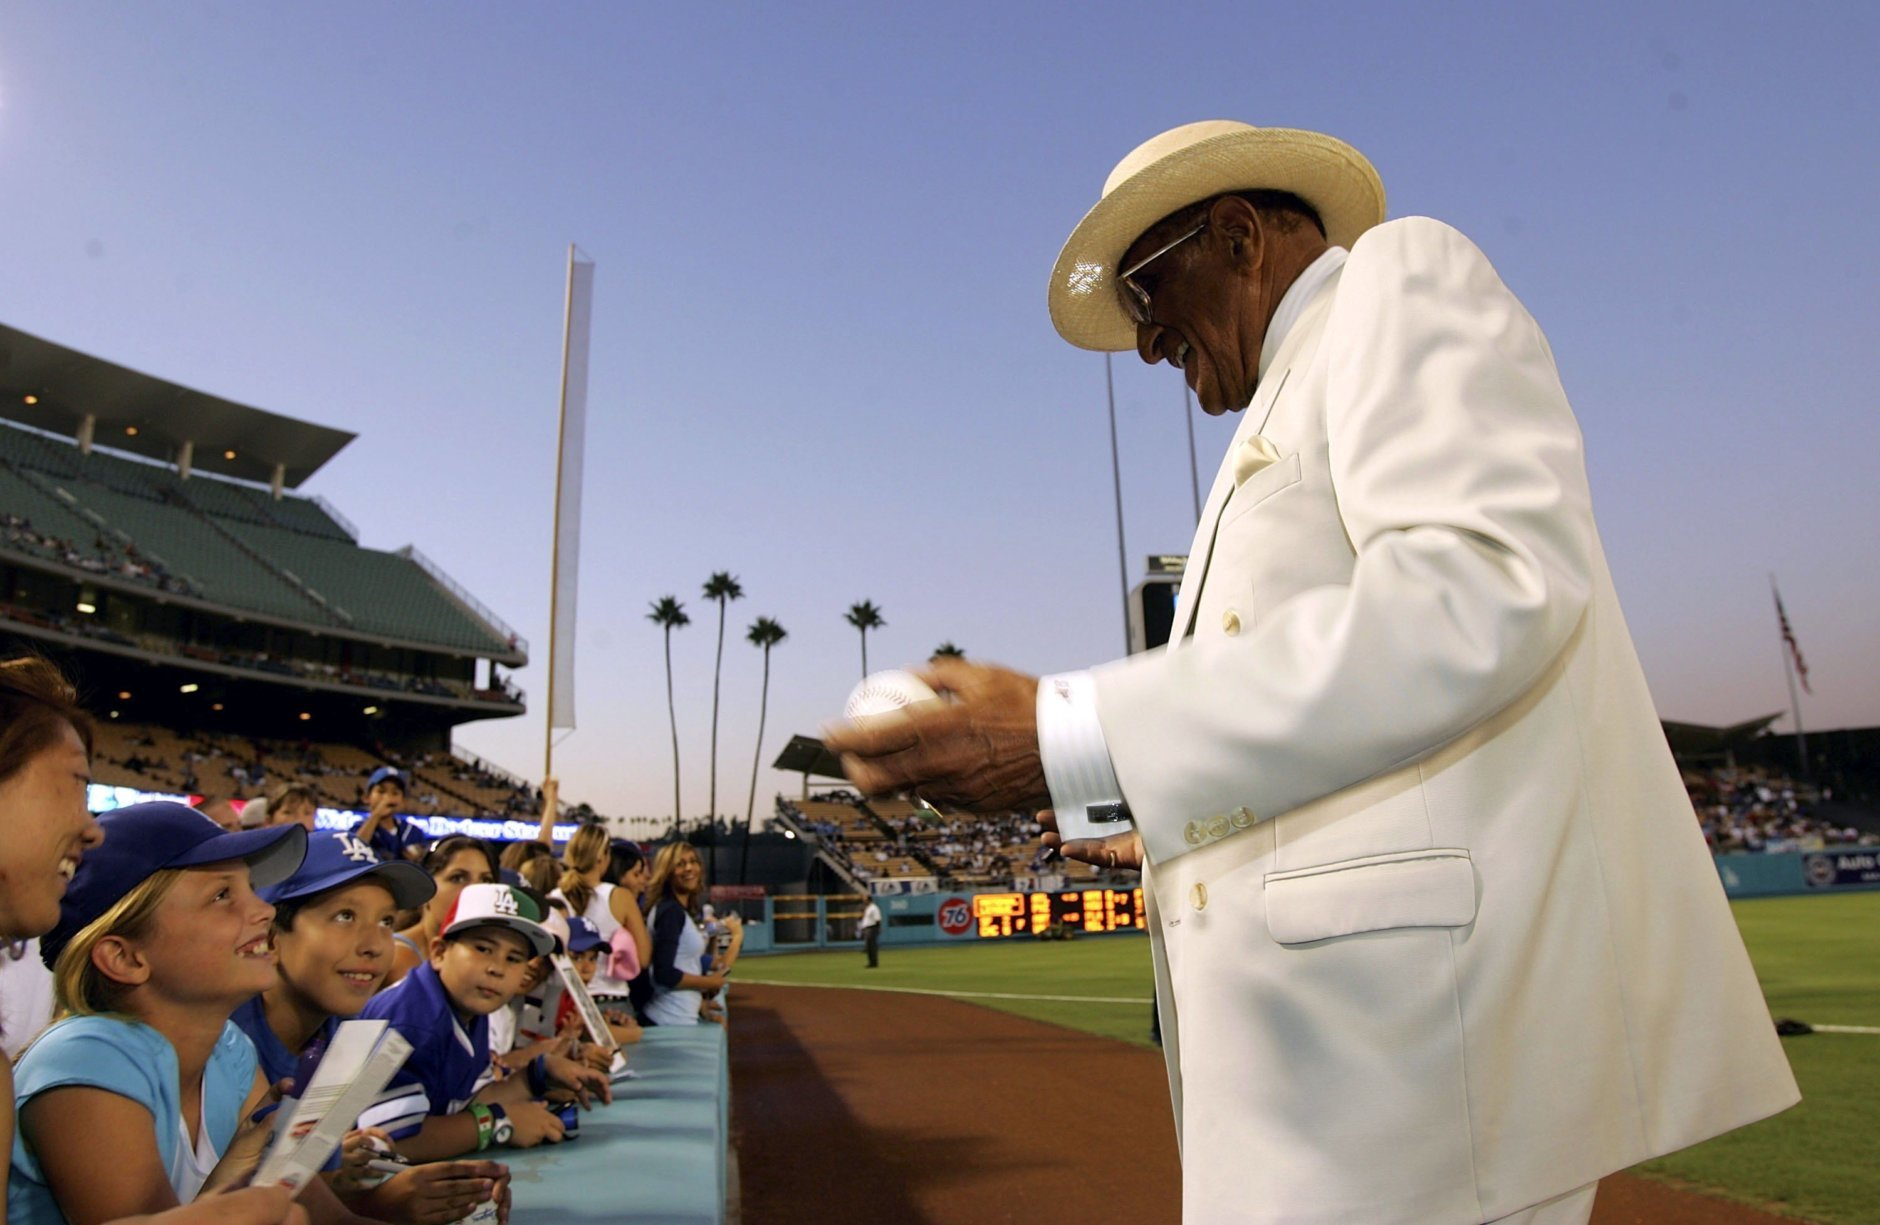 LOS ANGELES, CA - SEPTEMBER 01:   Hall of Famer and former Dodger pitcher Don Newcombe signs autographsbefore the game between the Los Angeles Dodgers on September 1, 2006 at Dodger Stadium in Los Angeles, California.  (Photo by Stephen Dunn/Getty Images)